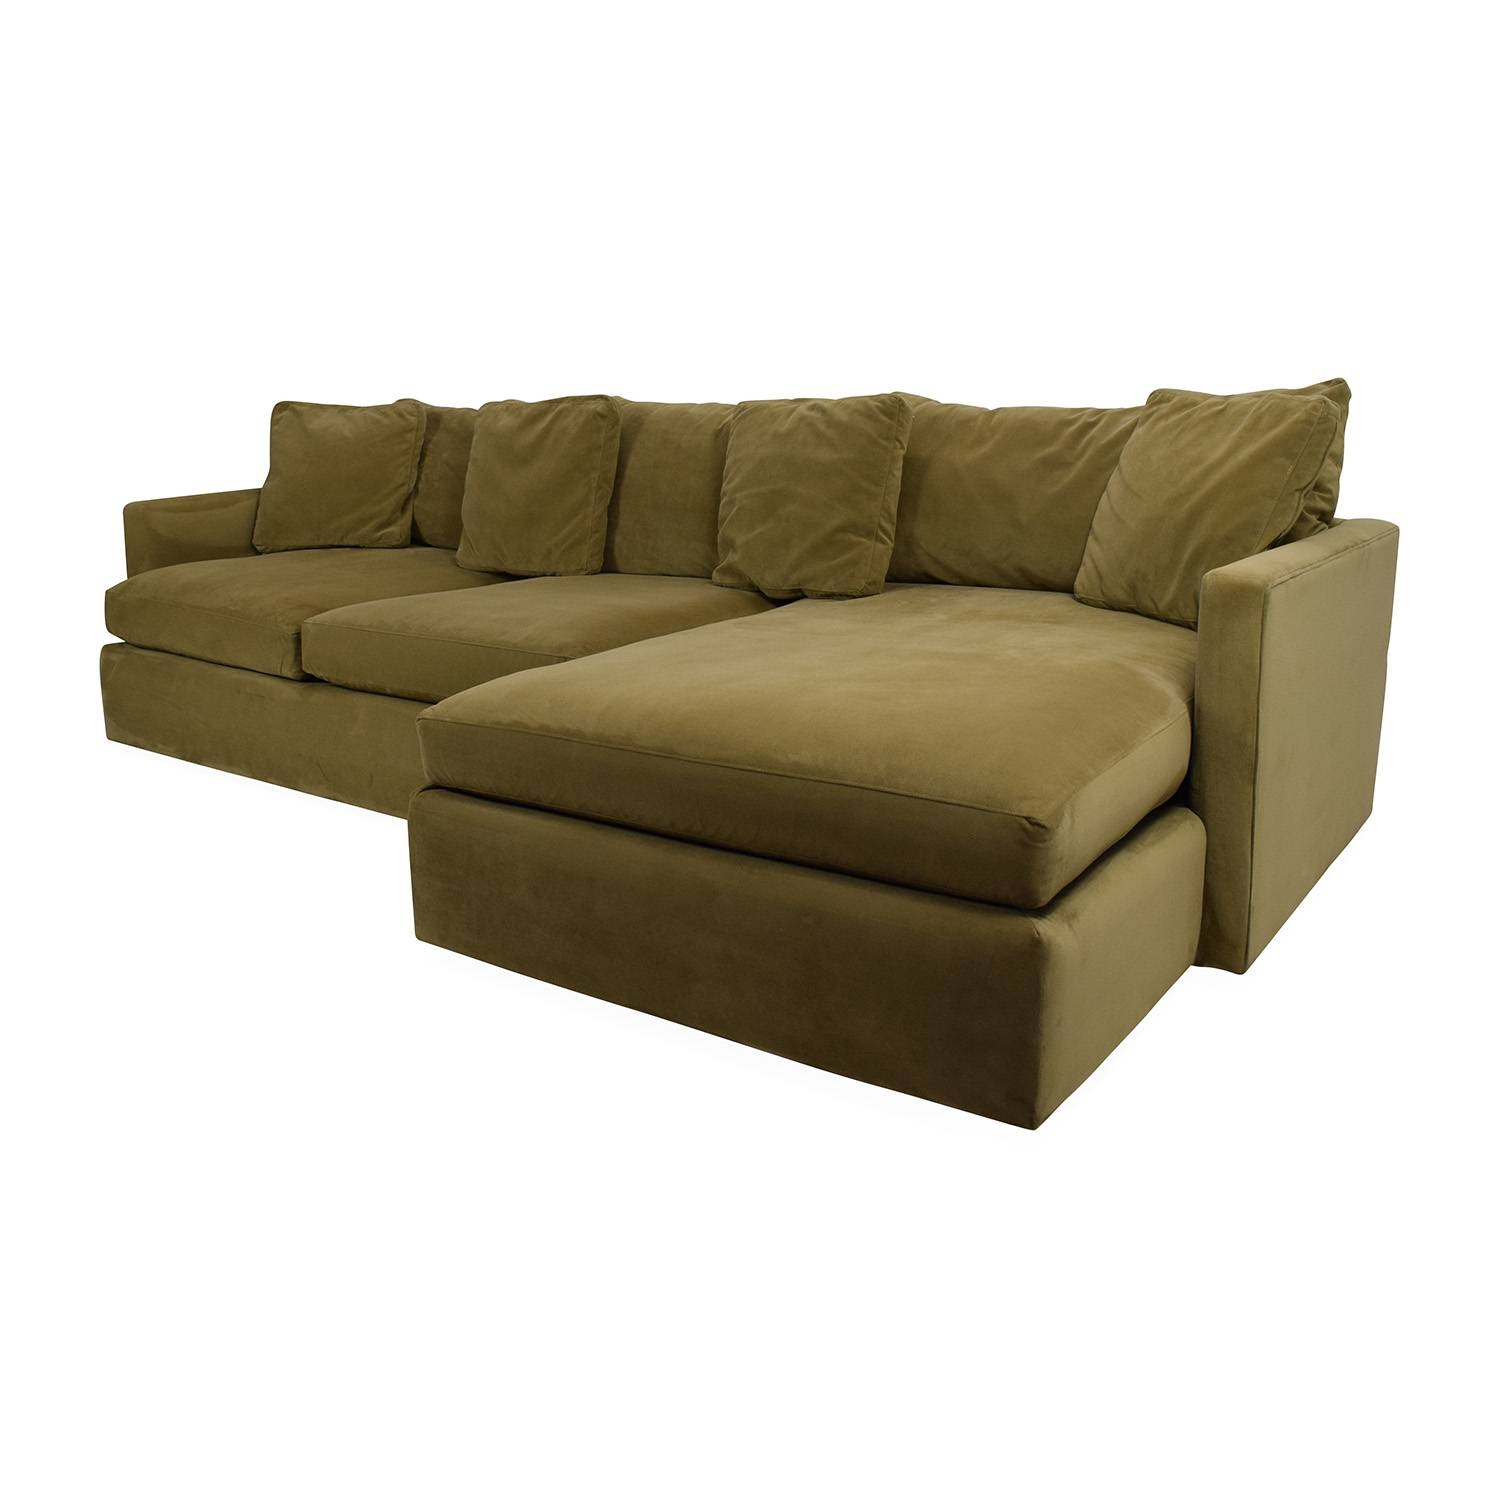 65% Off - Crate And Barrel Crate And Barrel Lounge Ii Sectional with regard to Crate And Barrel Sectional Sofas (Image 5 of 30)